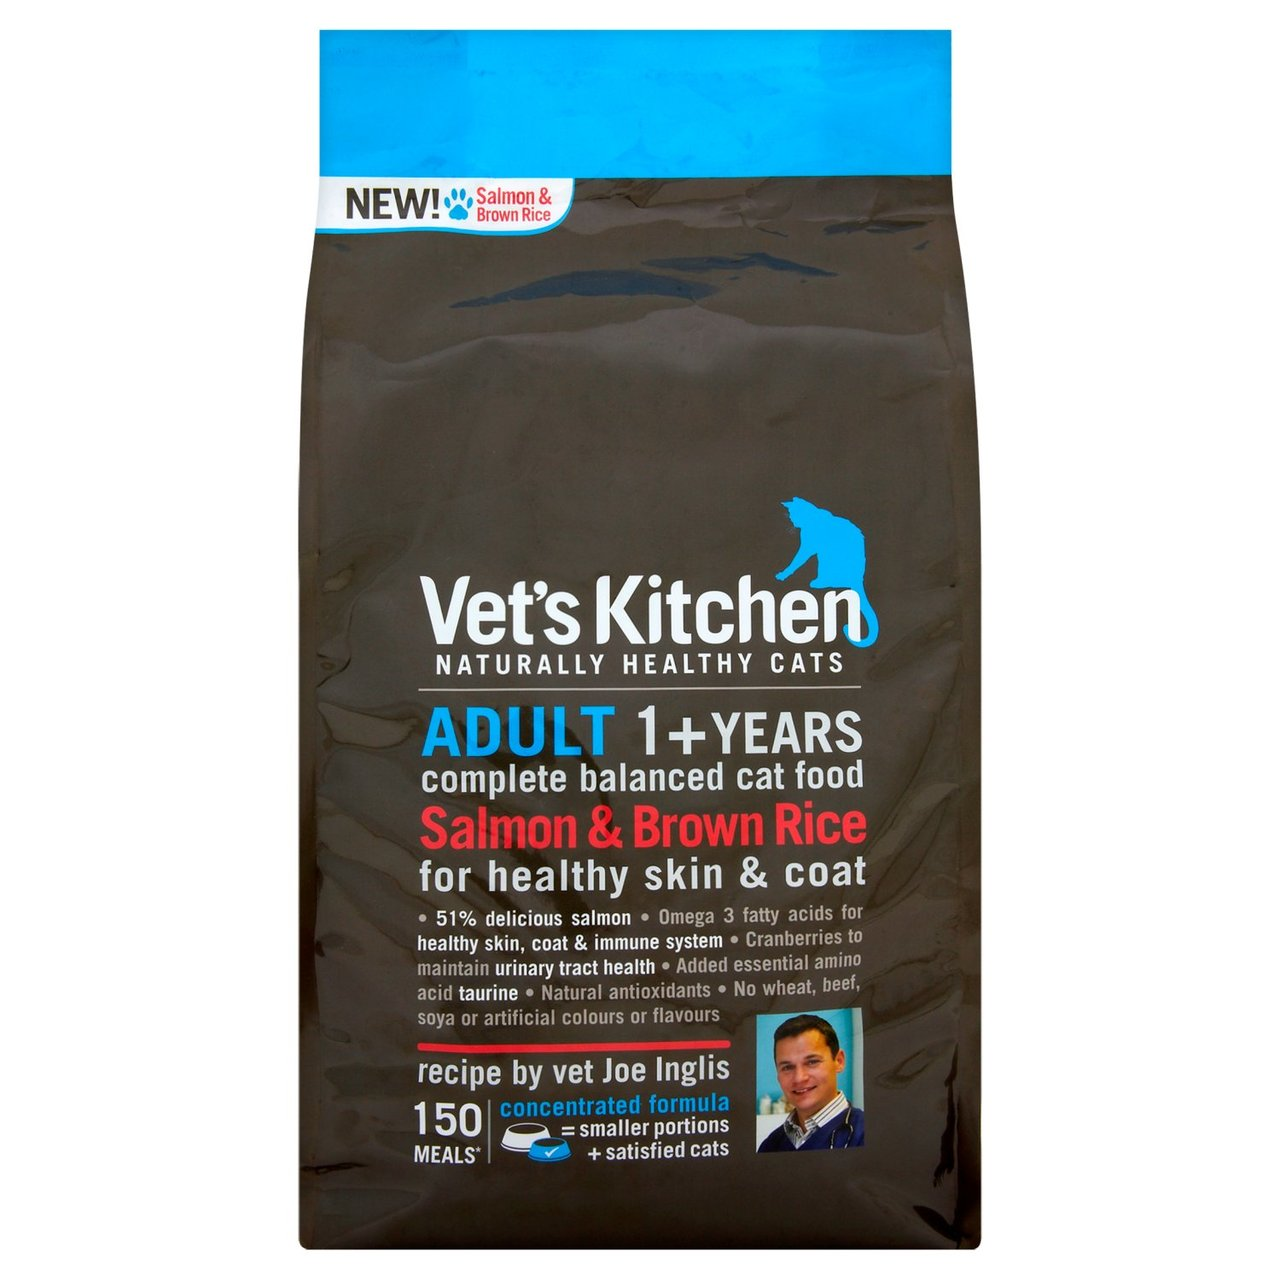 An image of Vets Kitchen Adult Cat Salmon & Brown Rice